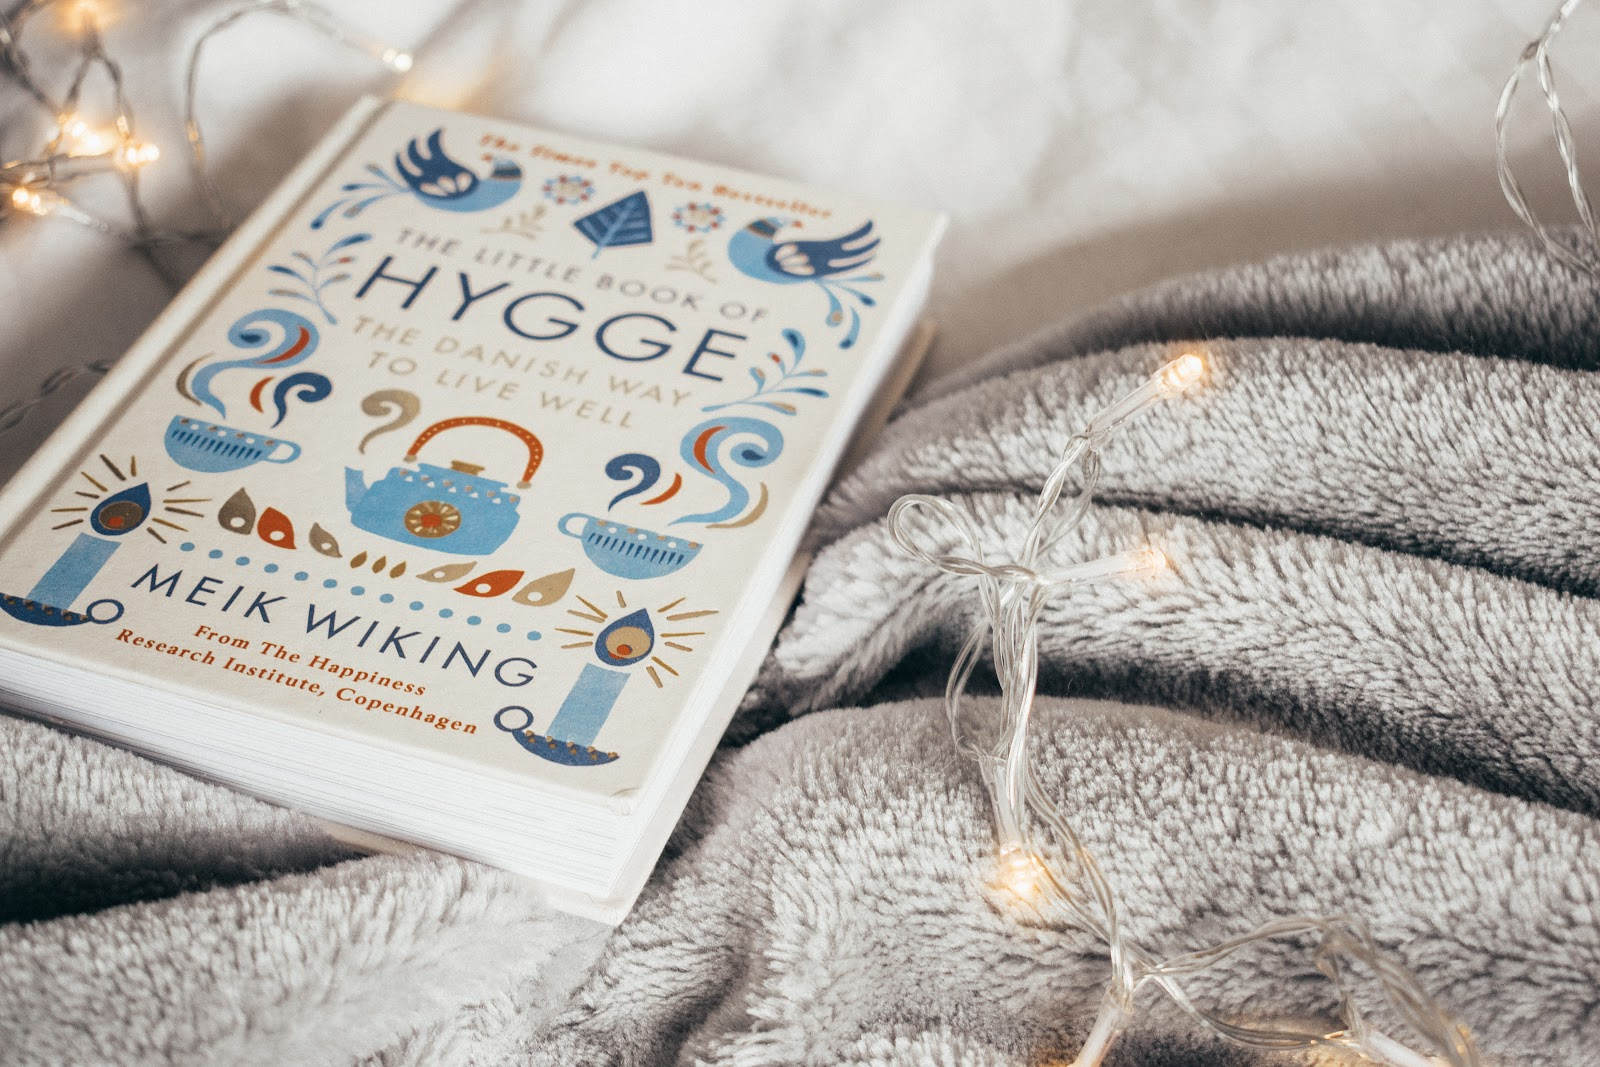 THE PERFECT HYGGE NIGHT IN LIFESTYLE BLOGGER UK